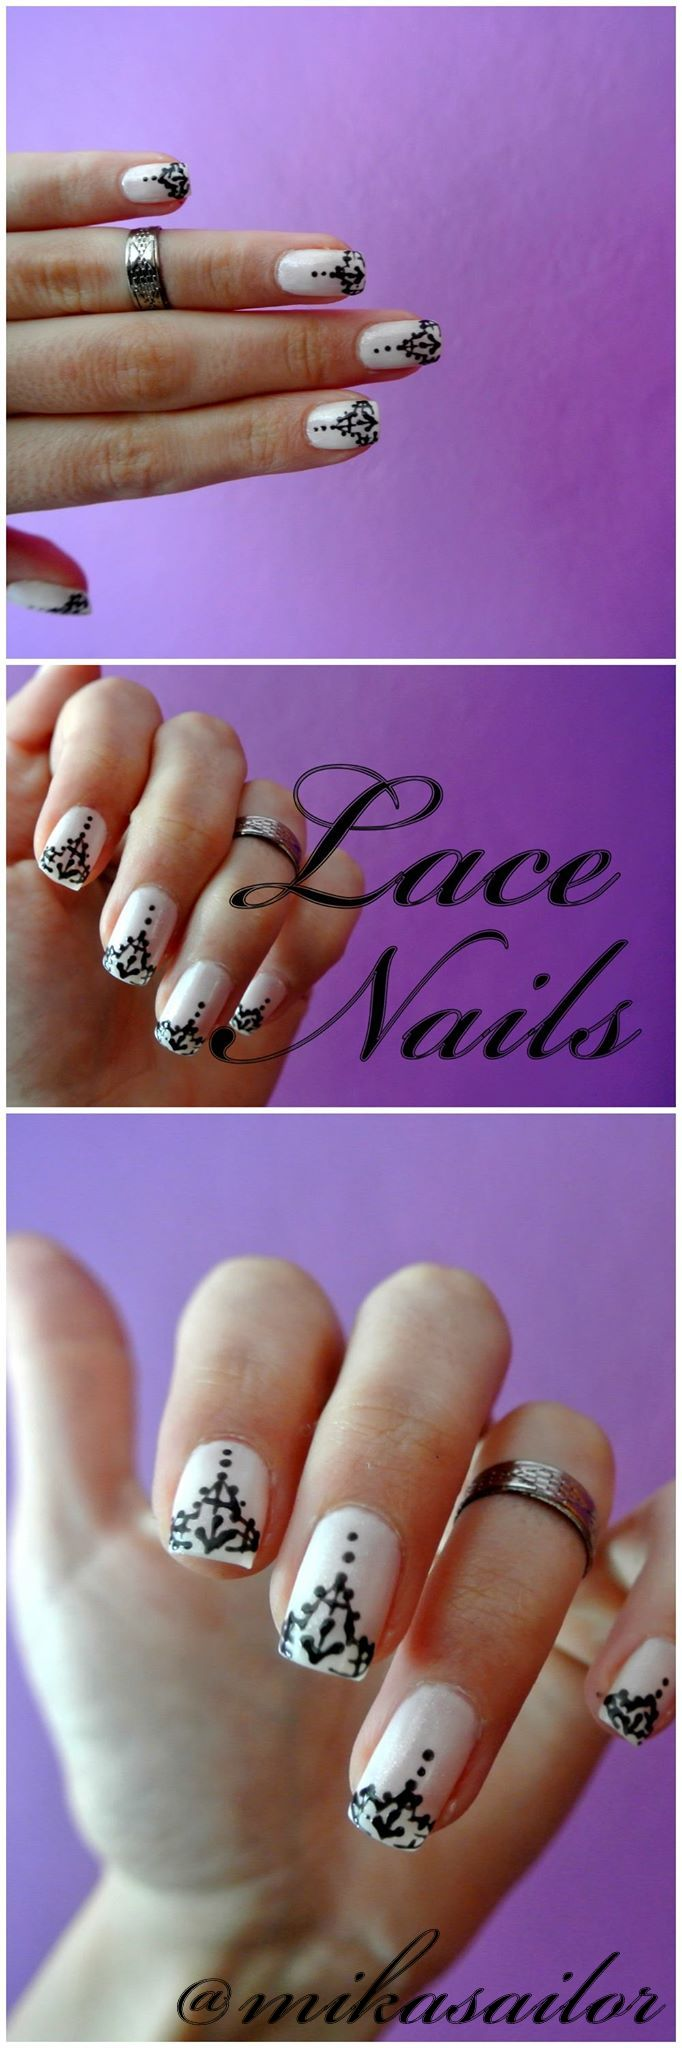 Easy Quick Simple Lace Nail Design Tutorial Video Nail Art